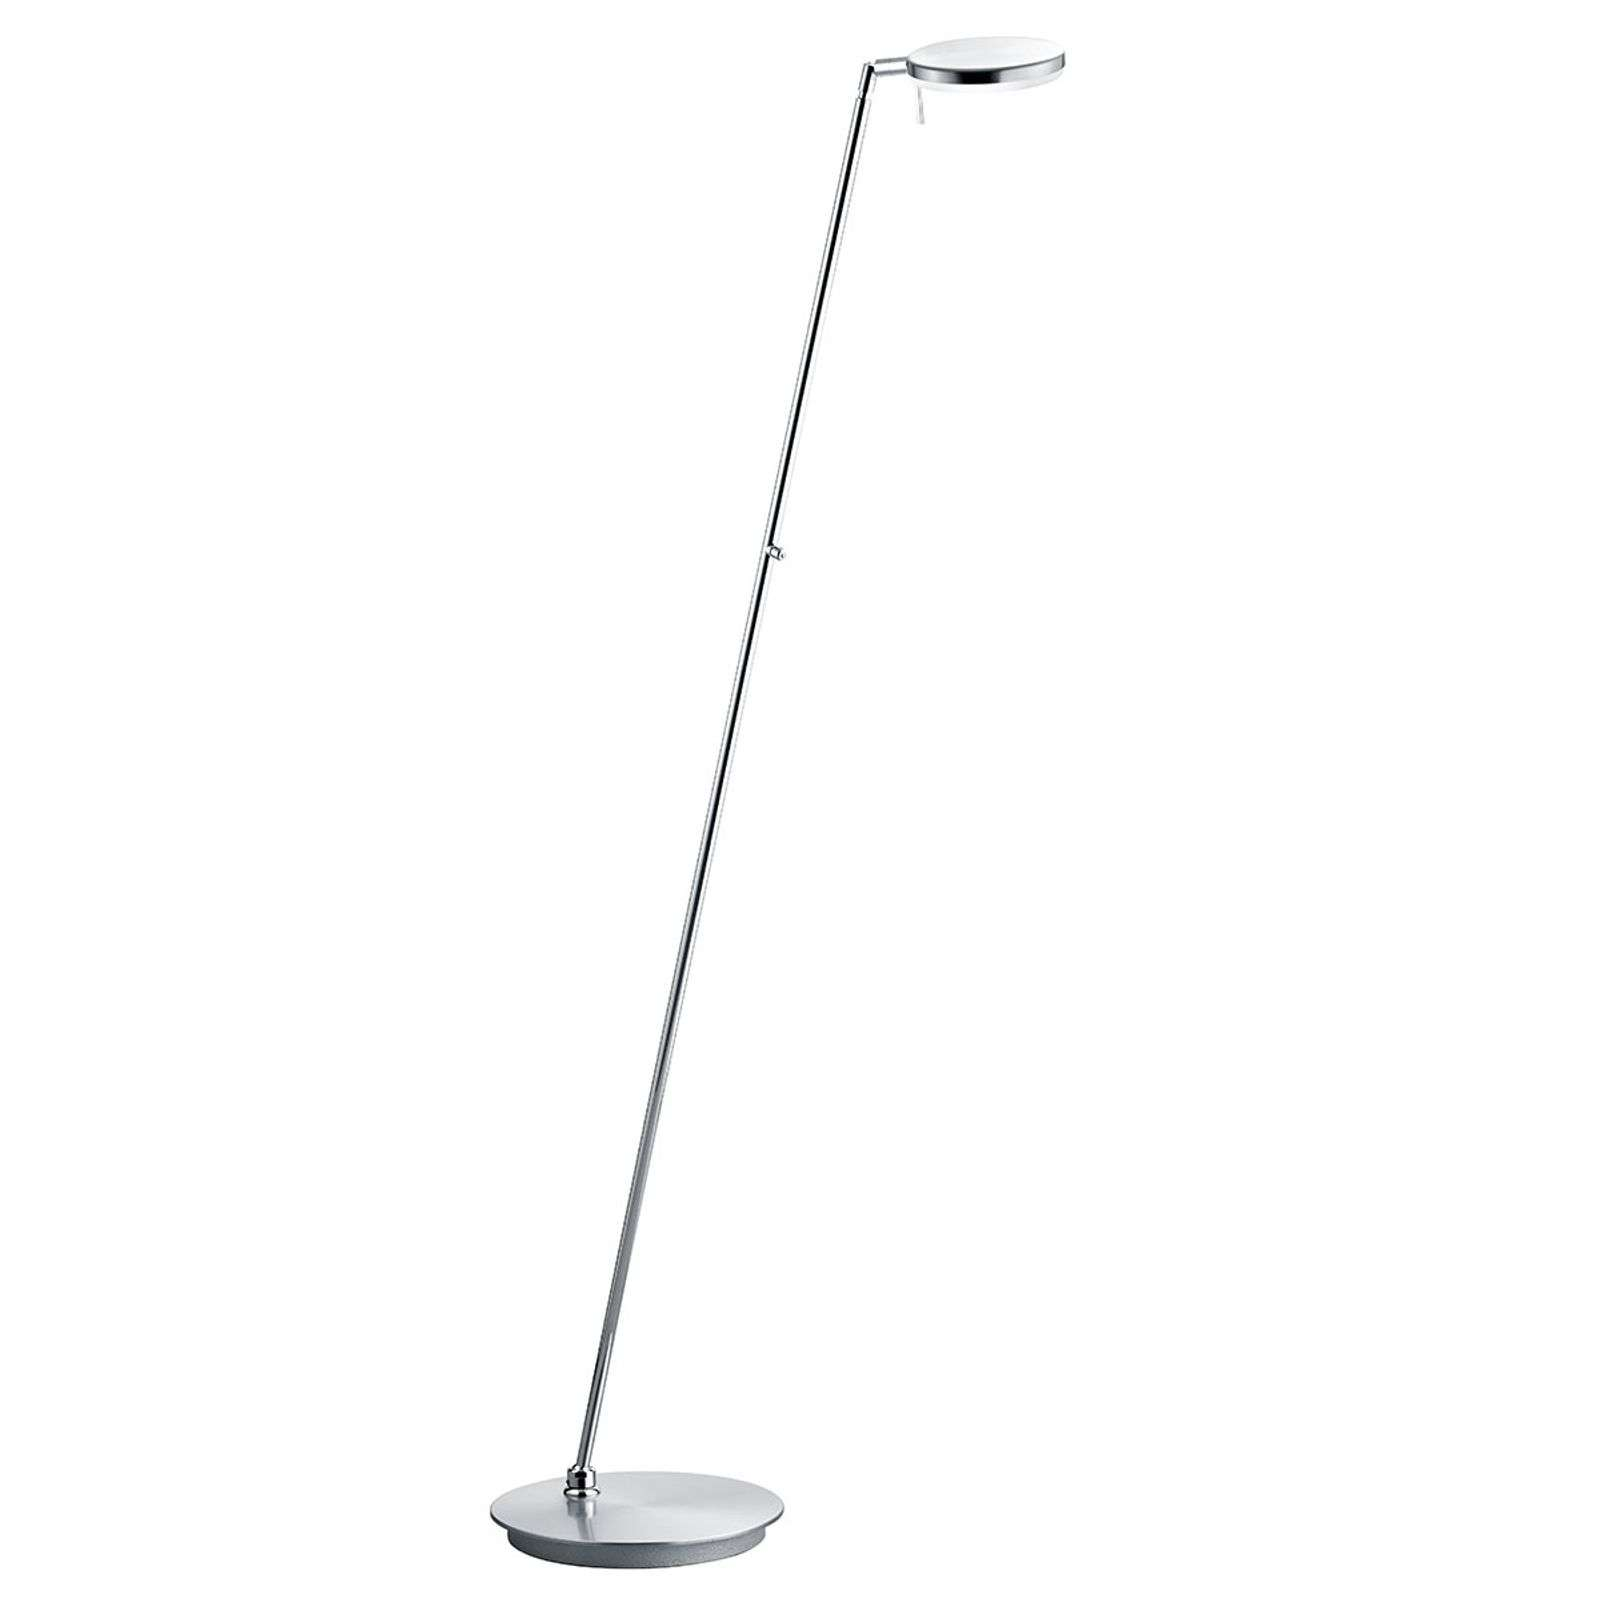 Lampadaire LED Omega pivotant, nickel